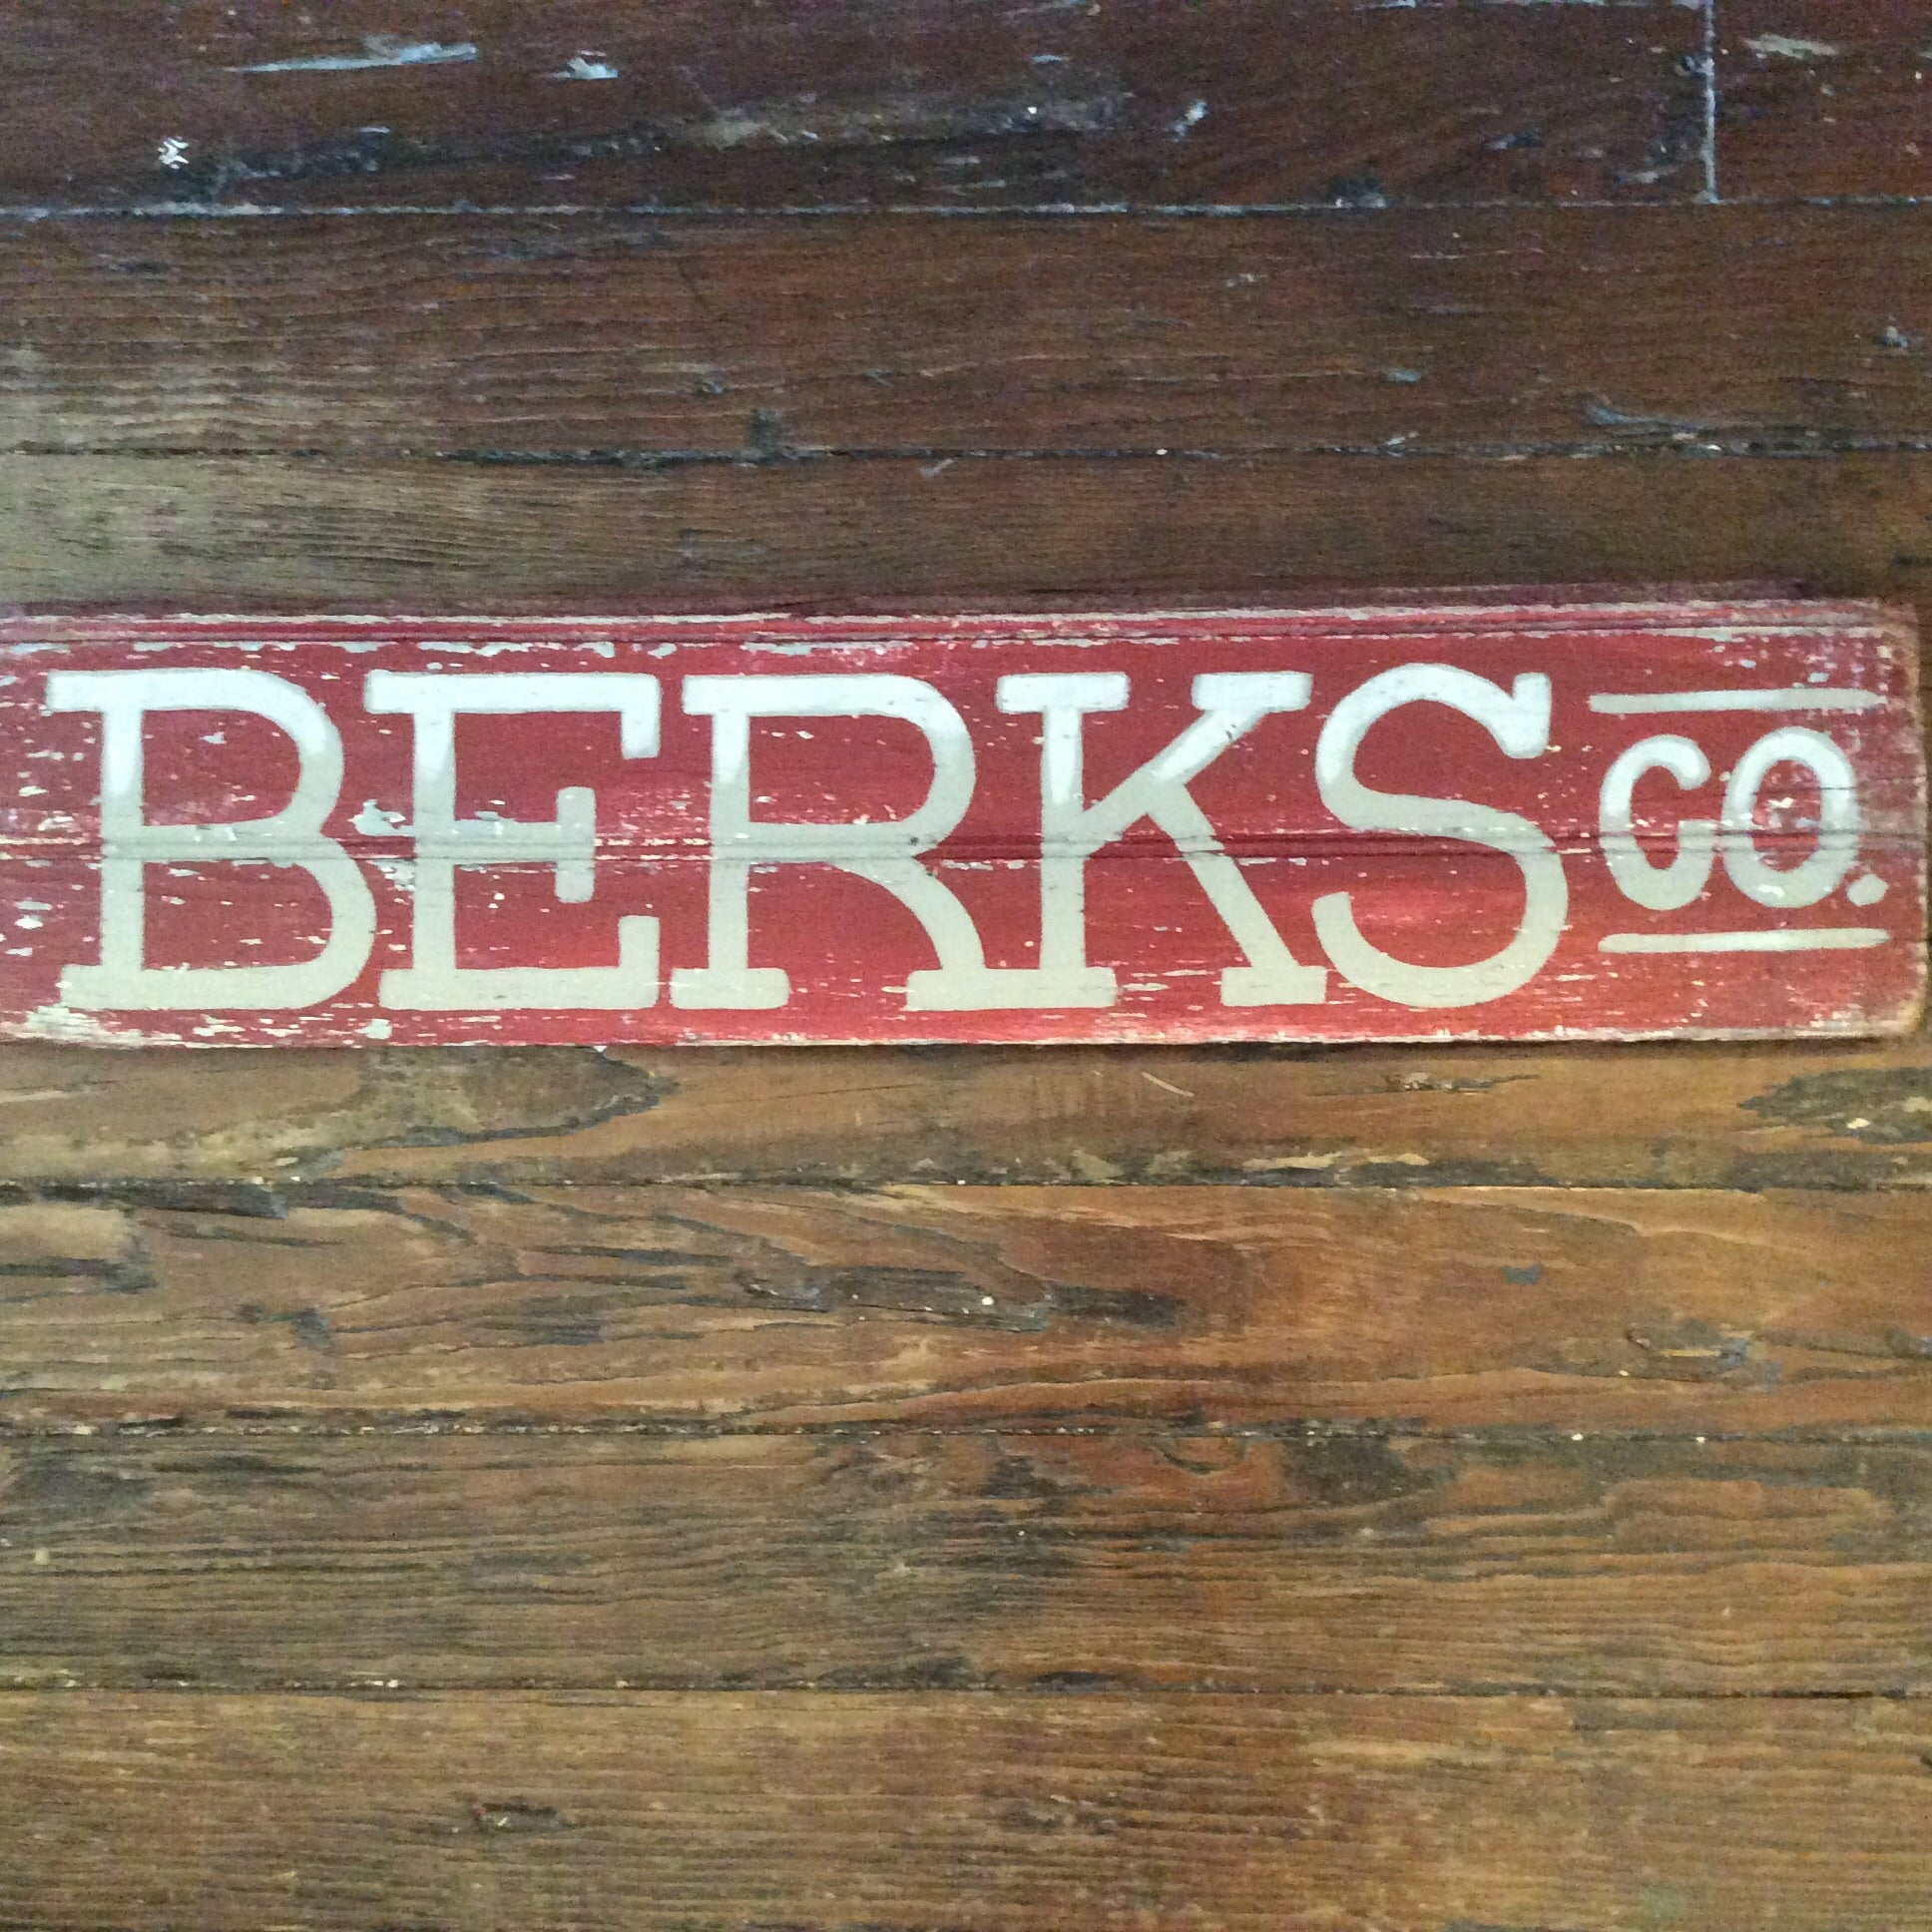 MSG Berks Co sign